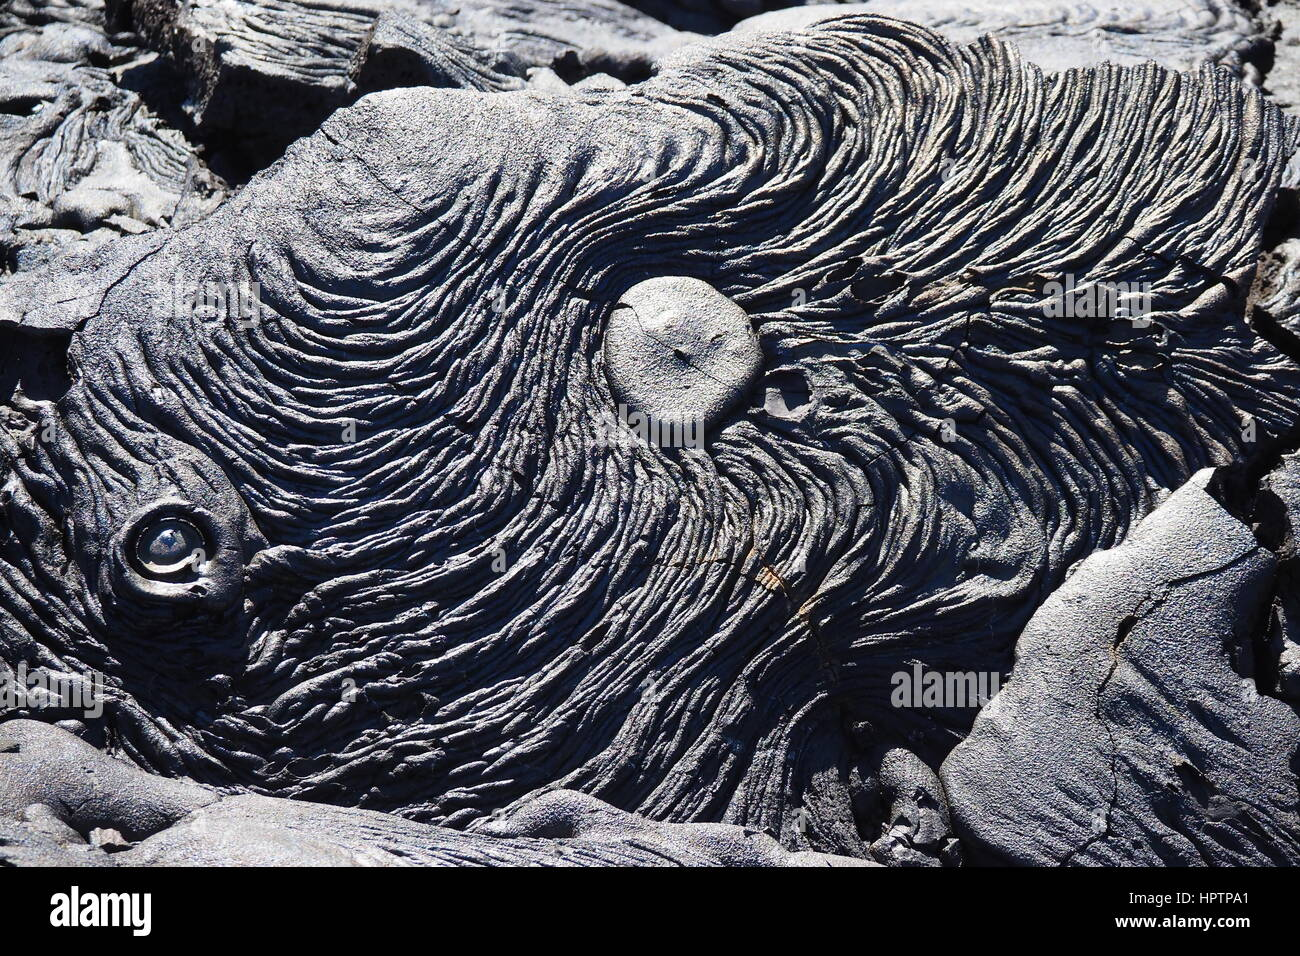 Pahoehoe ('ropy') lava in the Galapagos Islands - Stock Image